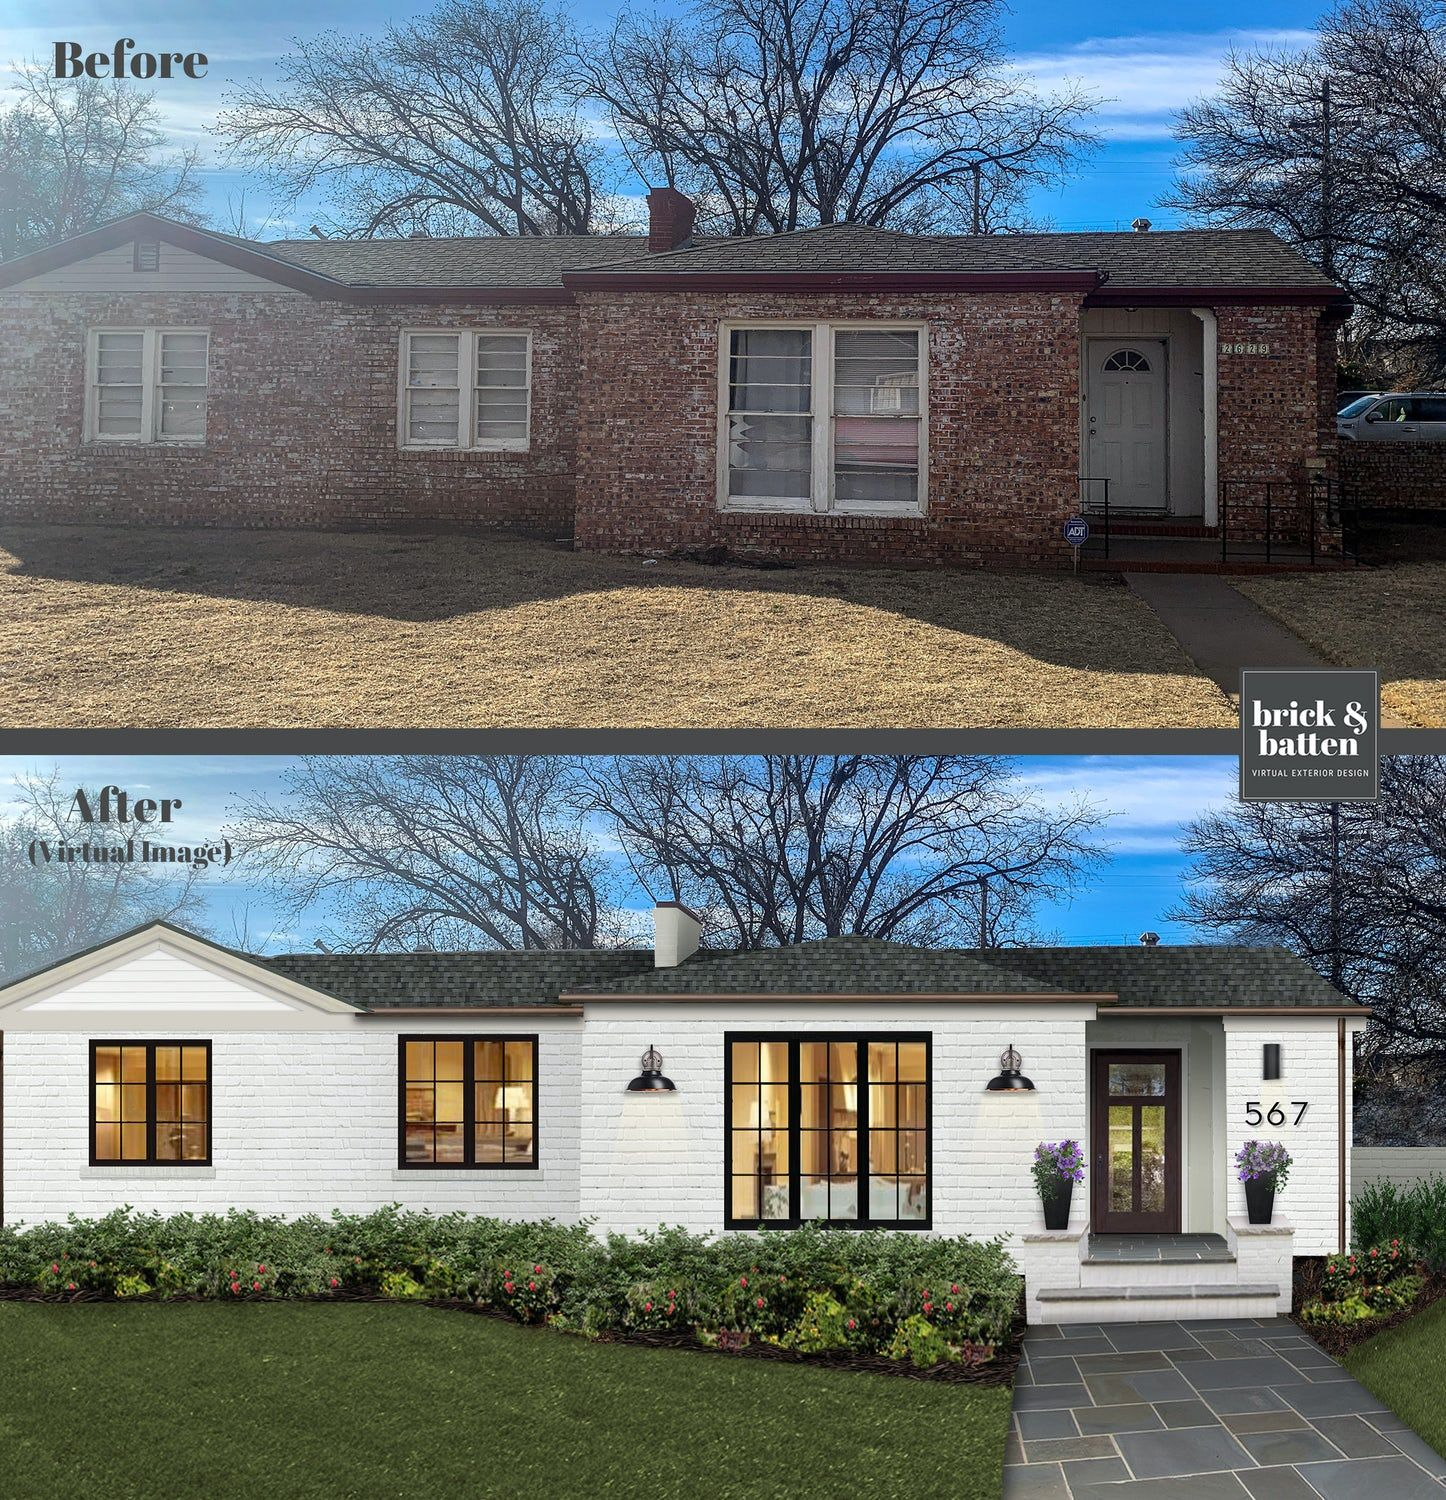 20 Painted Brick Houses To Inspire You In 2020 Blog Brick Batten In 2020 Painted Brick House Brick Exterior House Ranch House Exterior